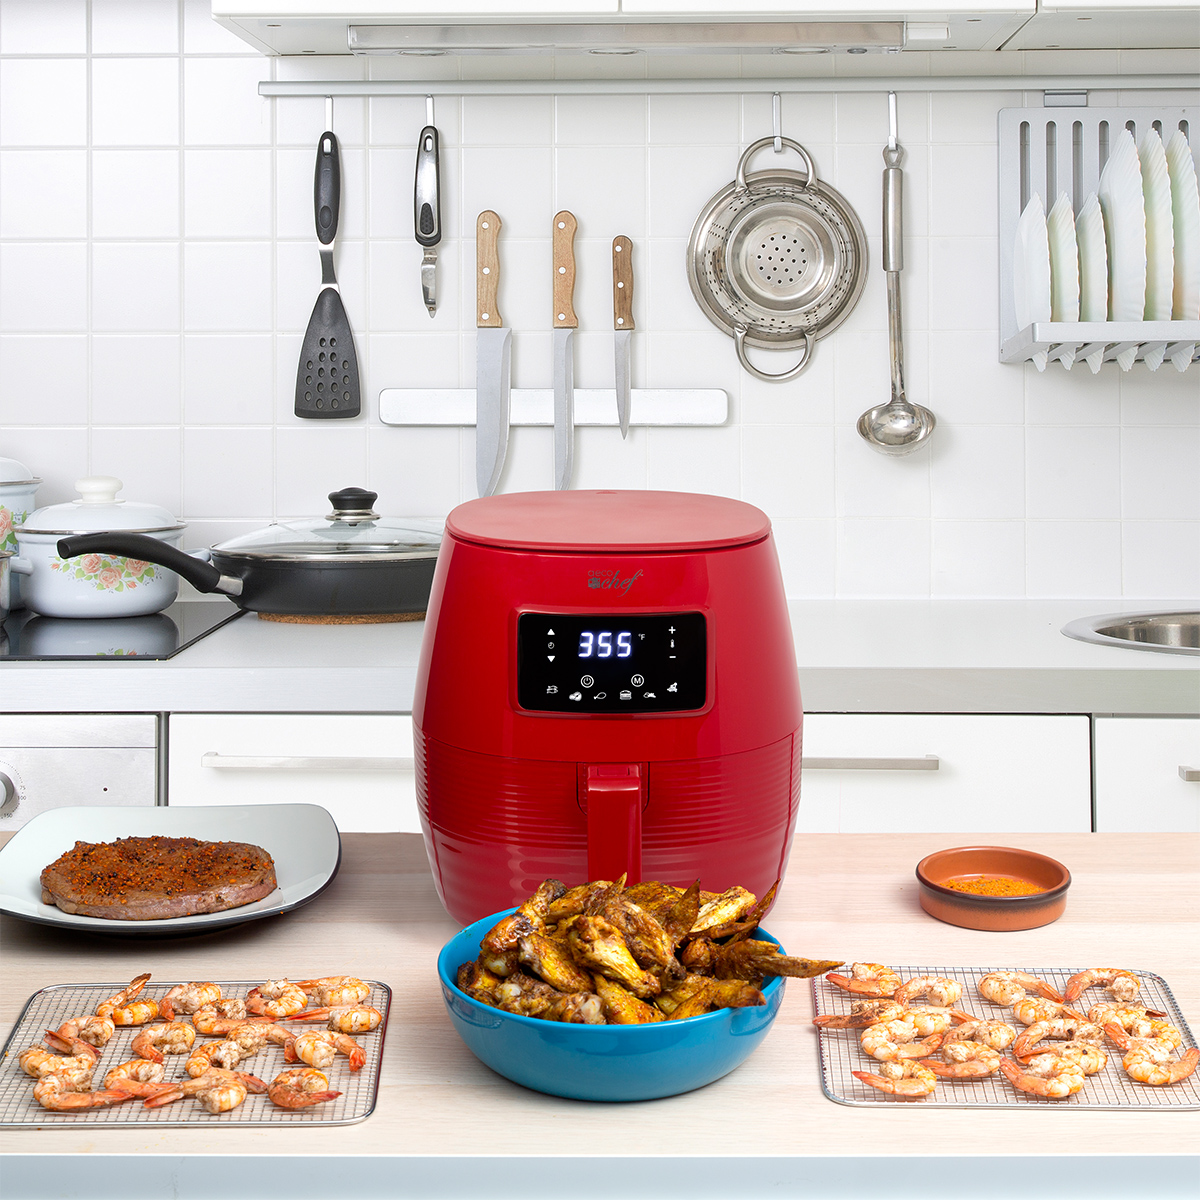 Deco-Chef-5-8QT-1400W-Digital-Electric-No-Oil-Air-Fryer-6-Cooking-Presets-Timer thumbnail 30